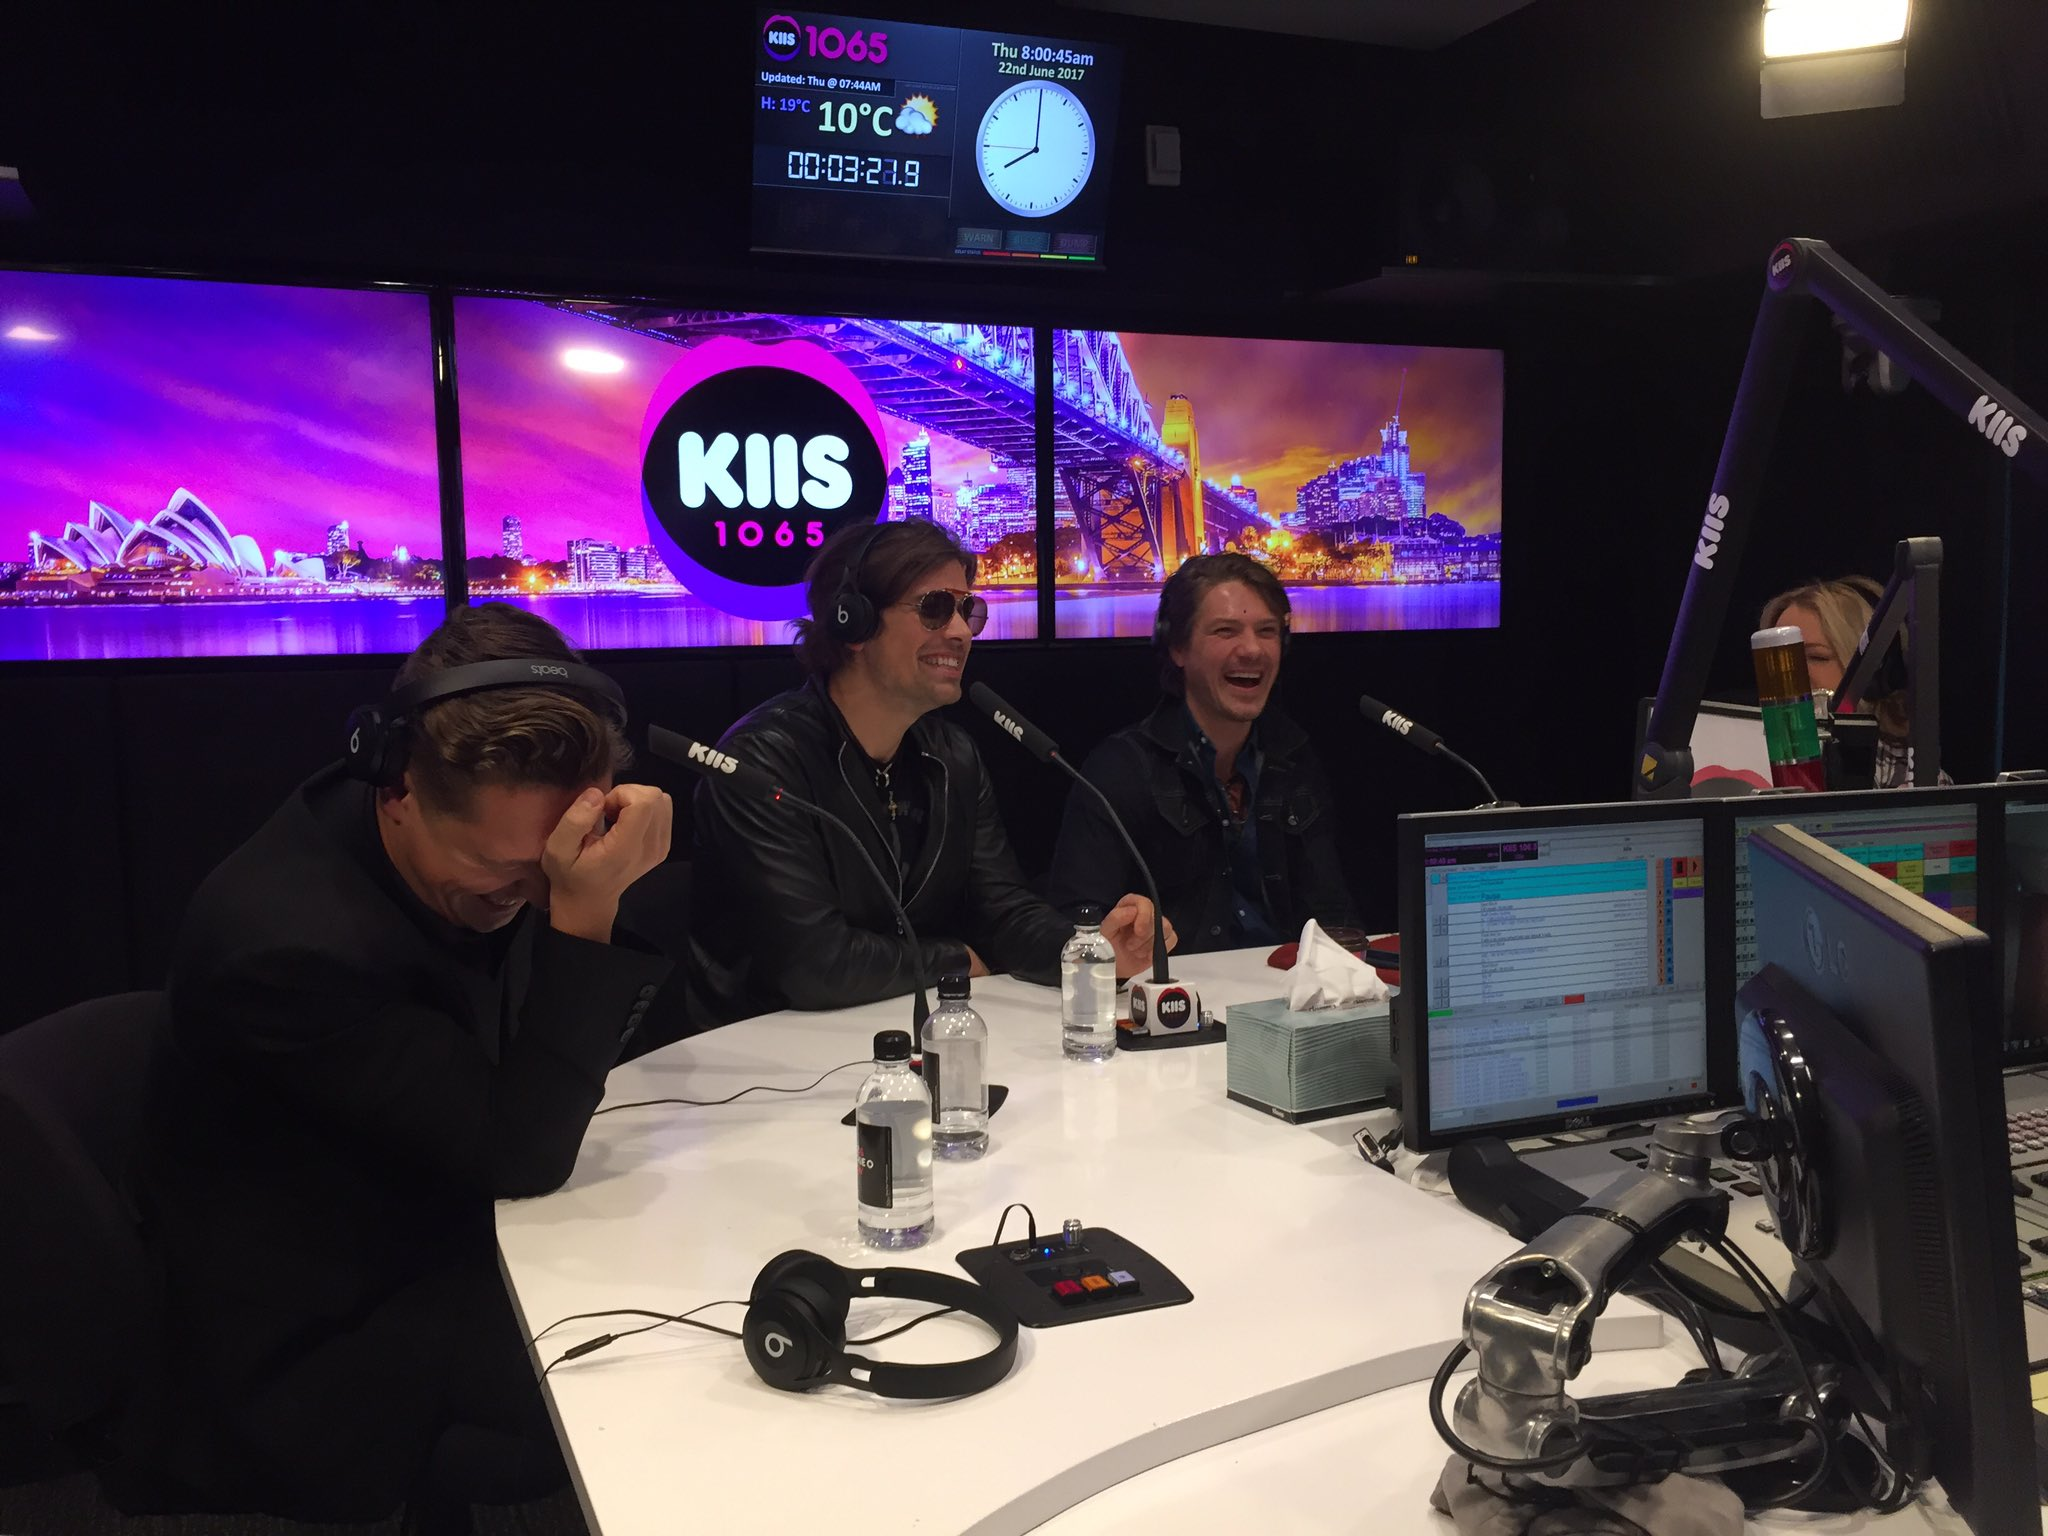 Live on @kyleandjackieo now! Tune in to @KIIS1065 https://t.co/T7Pq3Gobrz